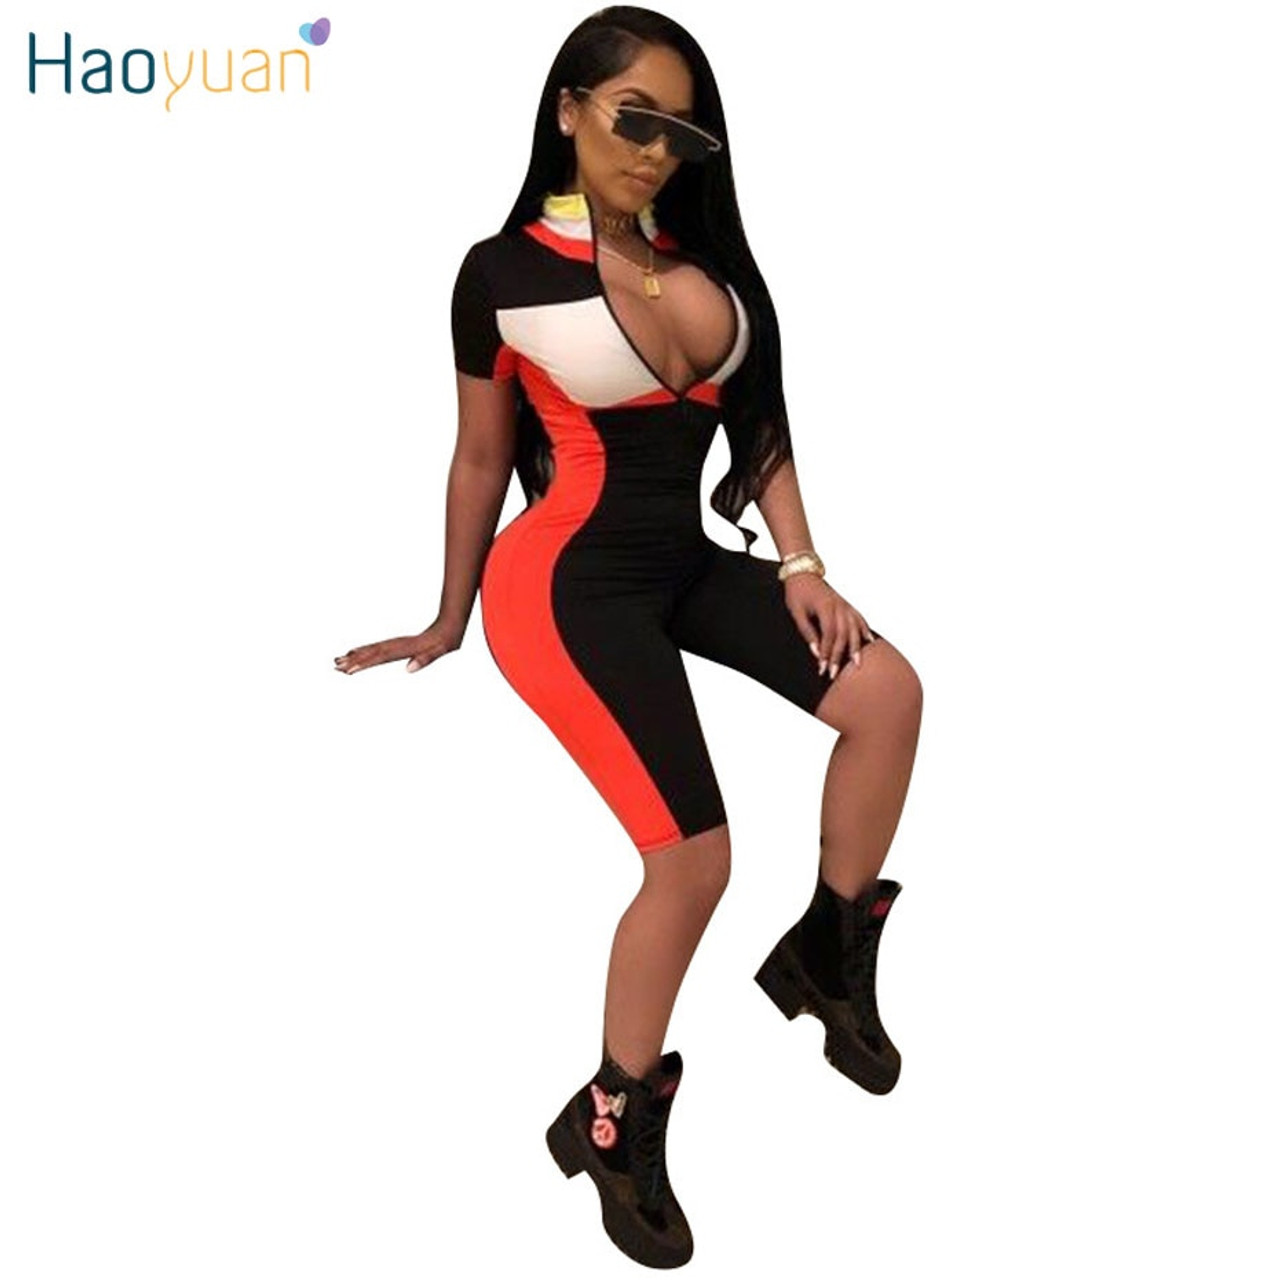 HAOYUAN Sexy Playsuit 2019 New Fitness Shorts Bodysuit Short Sleeve Casual  Body Summer Overalls Zip Up Rompers Womens Jumpsuit - OnshopDeals.Com 35245e25fd